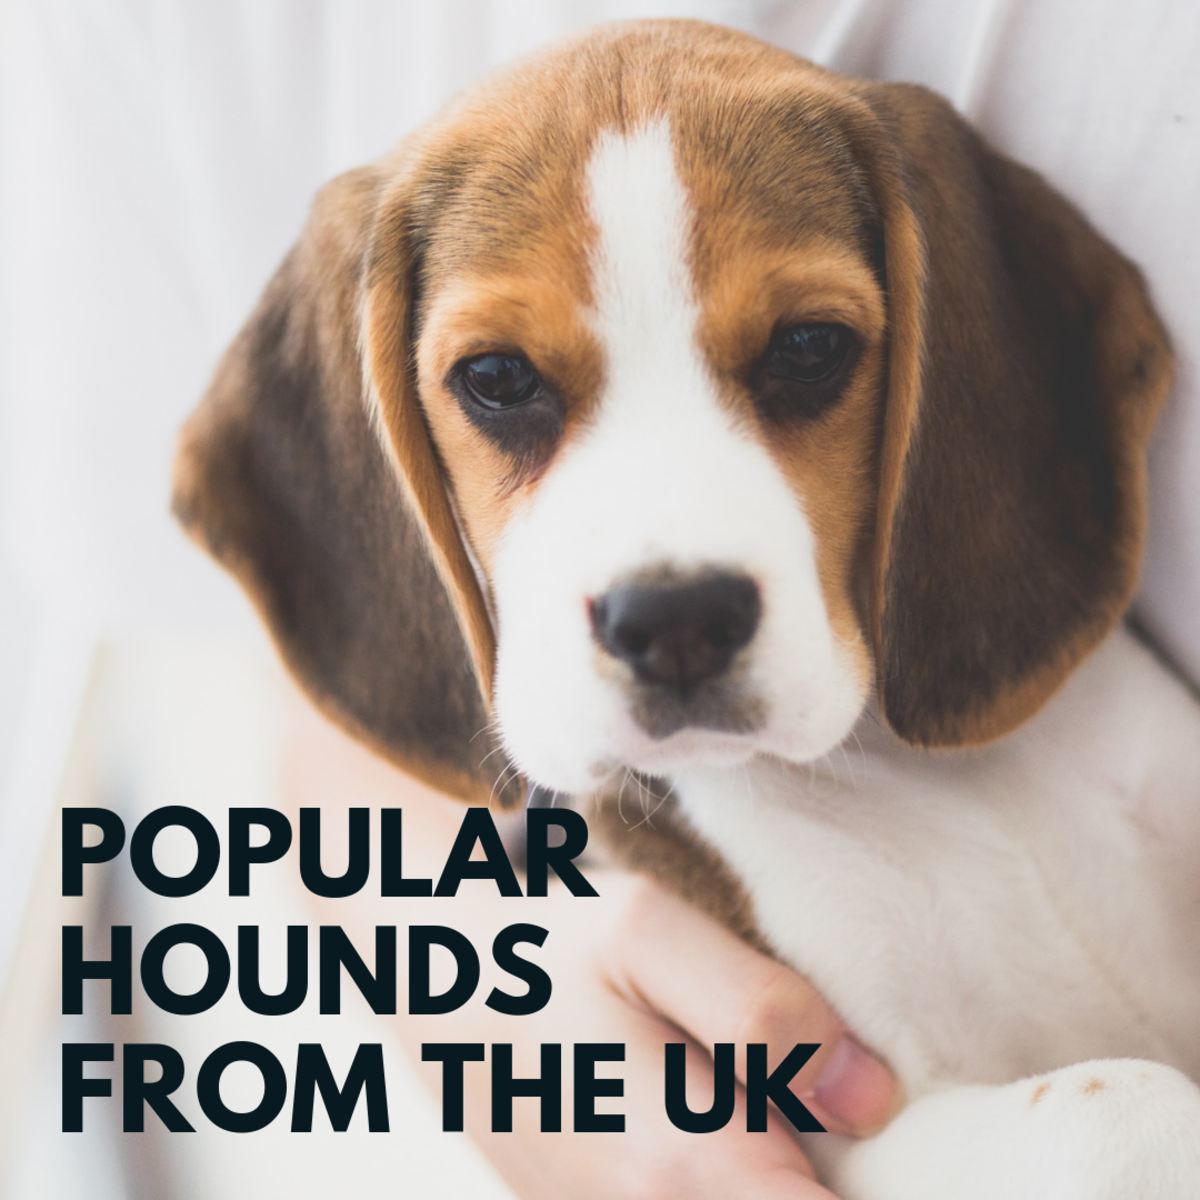 Top 5 English Hound Dogs From the UK